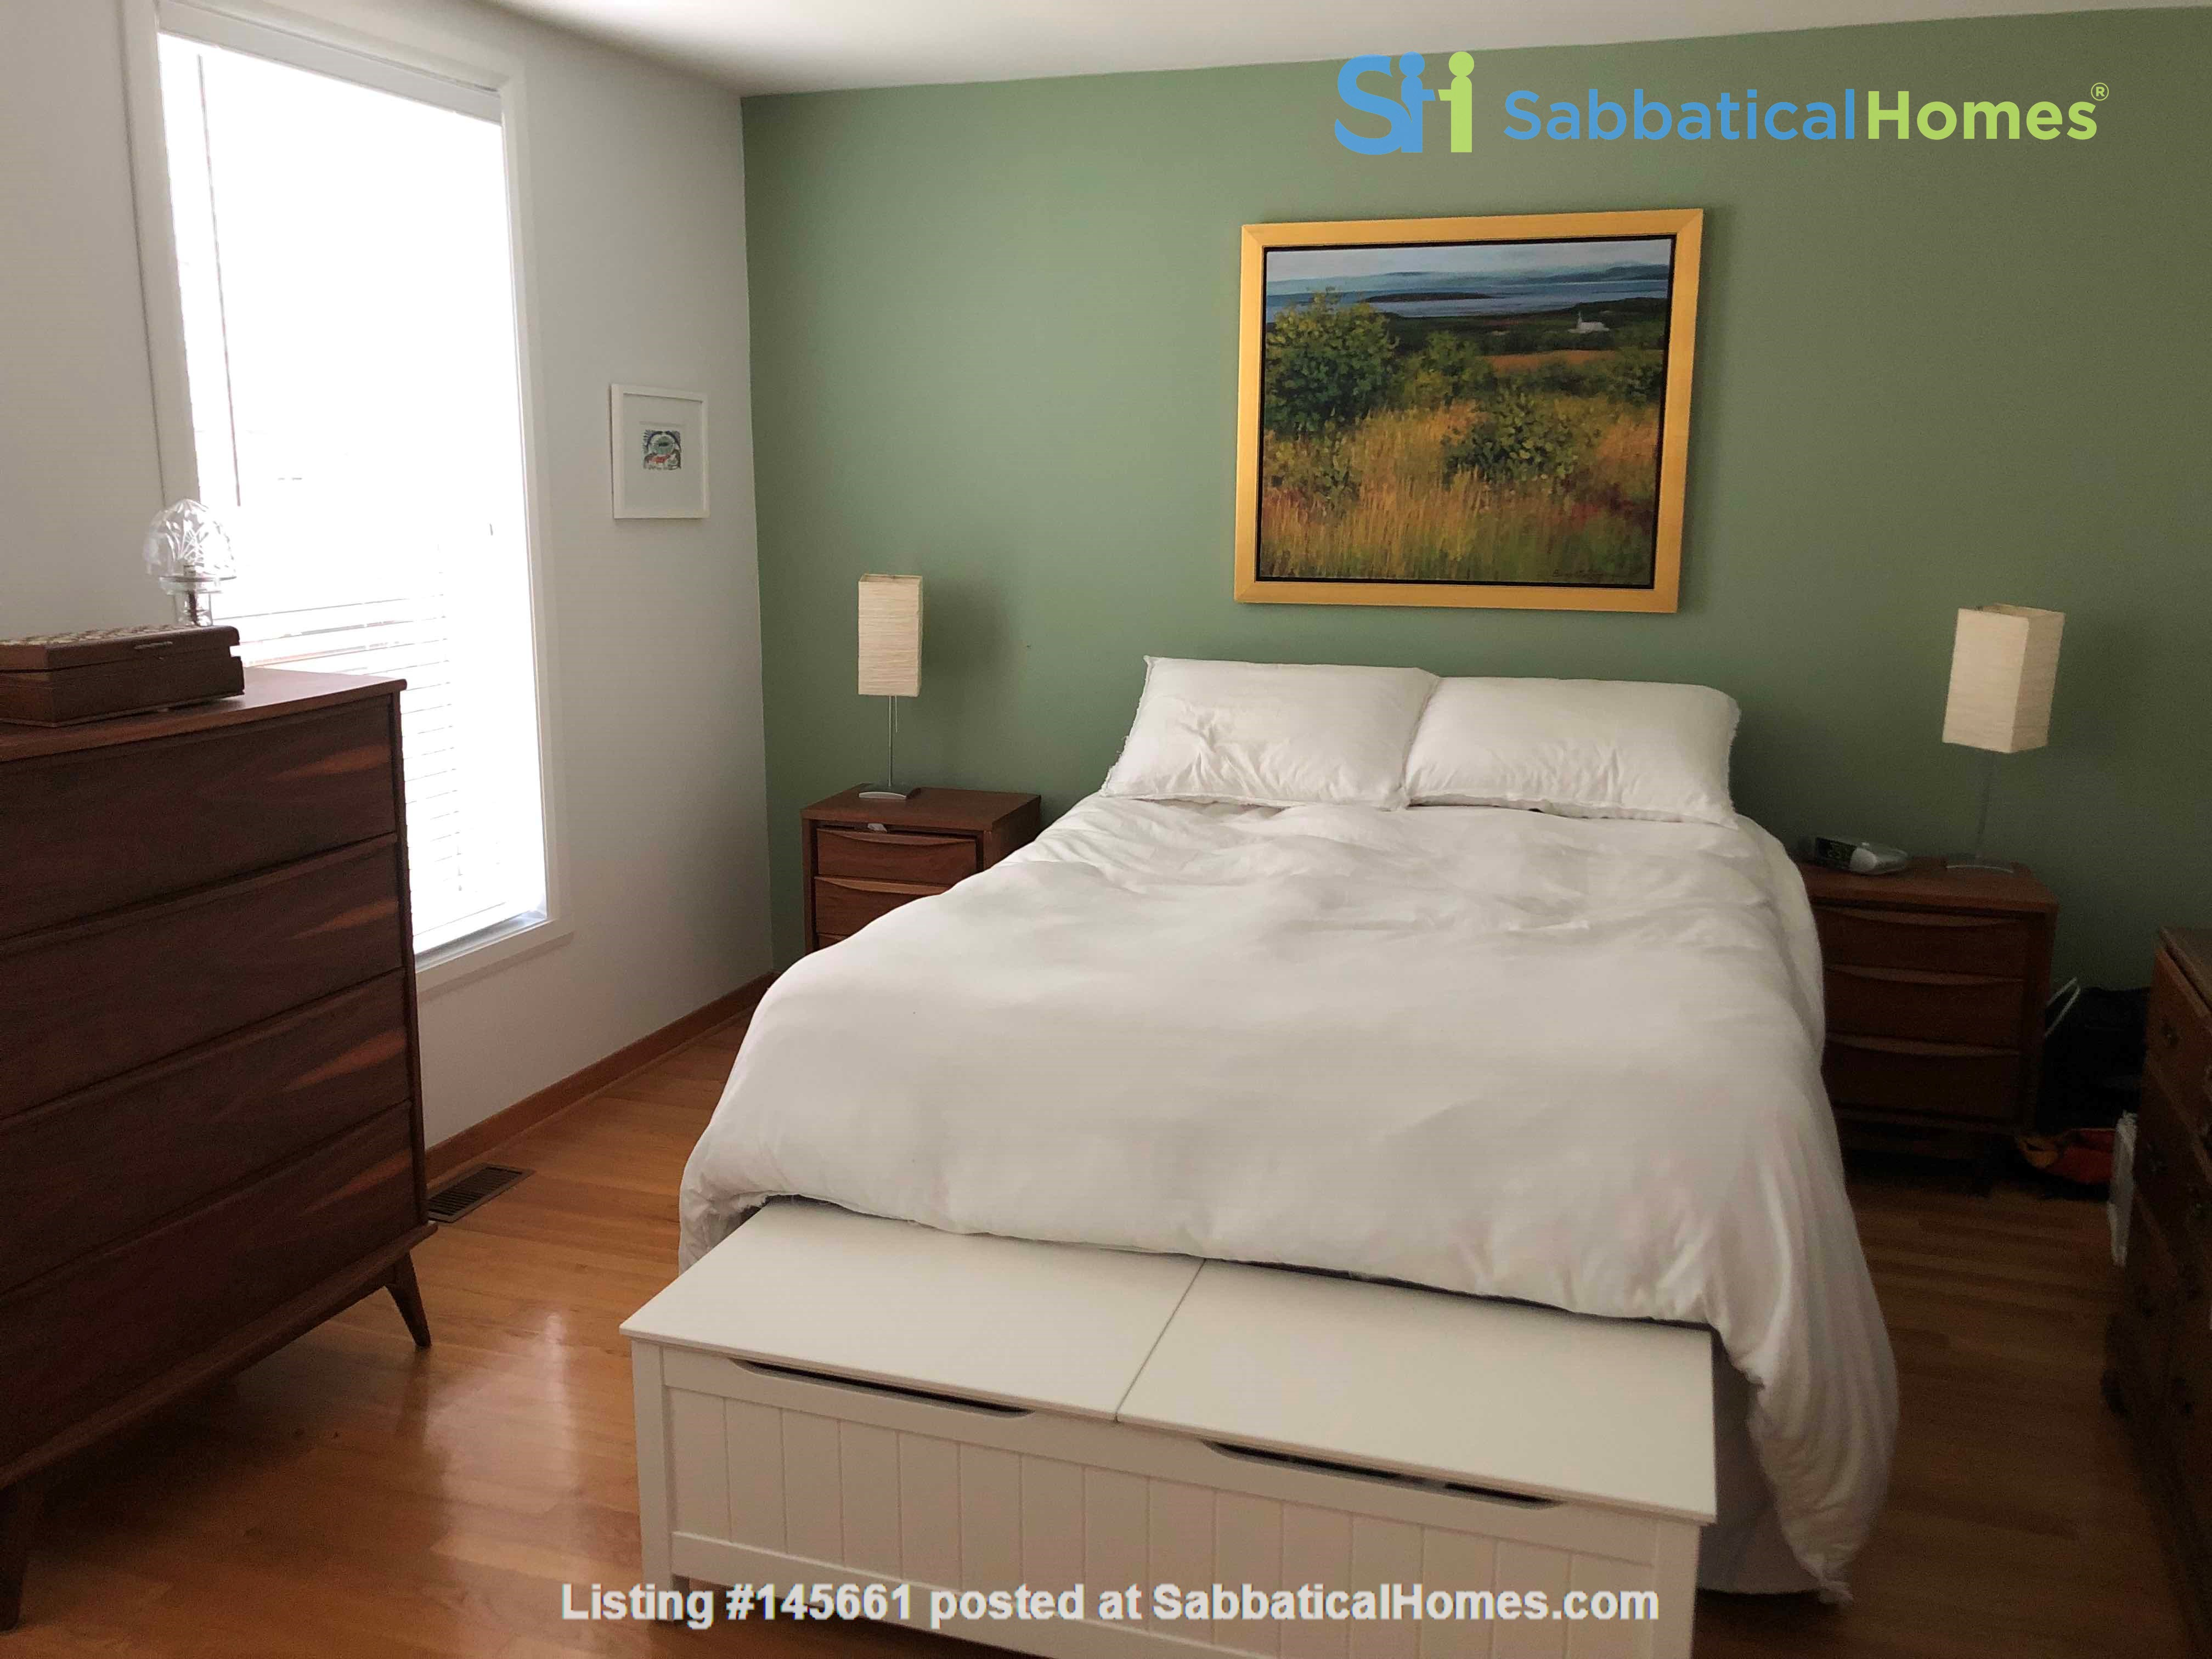 Beautiful fully furnished 2 BR in Vieux-Rosemont Home Rental in Montréal, Québec, Canada 2